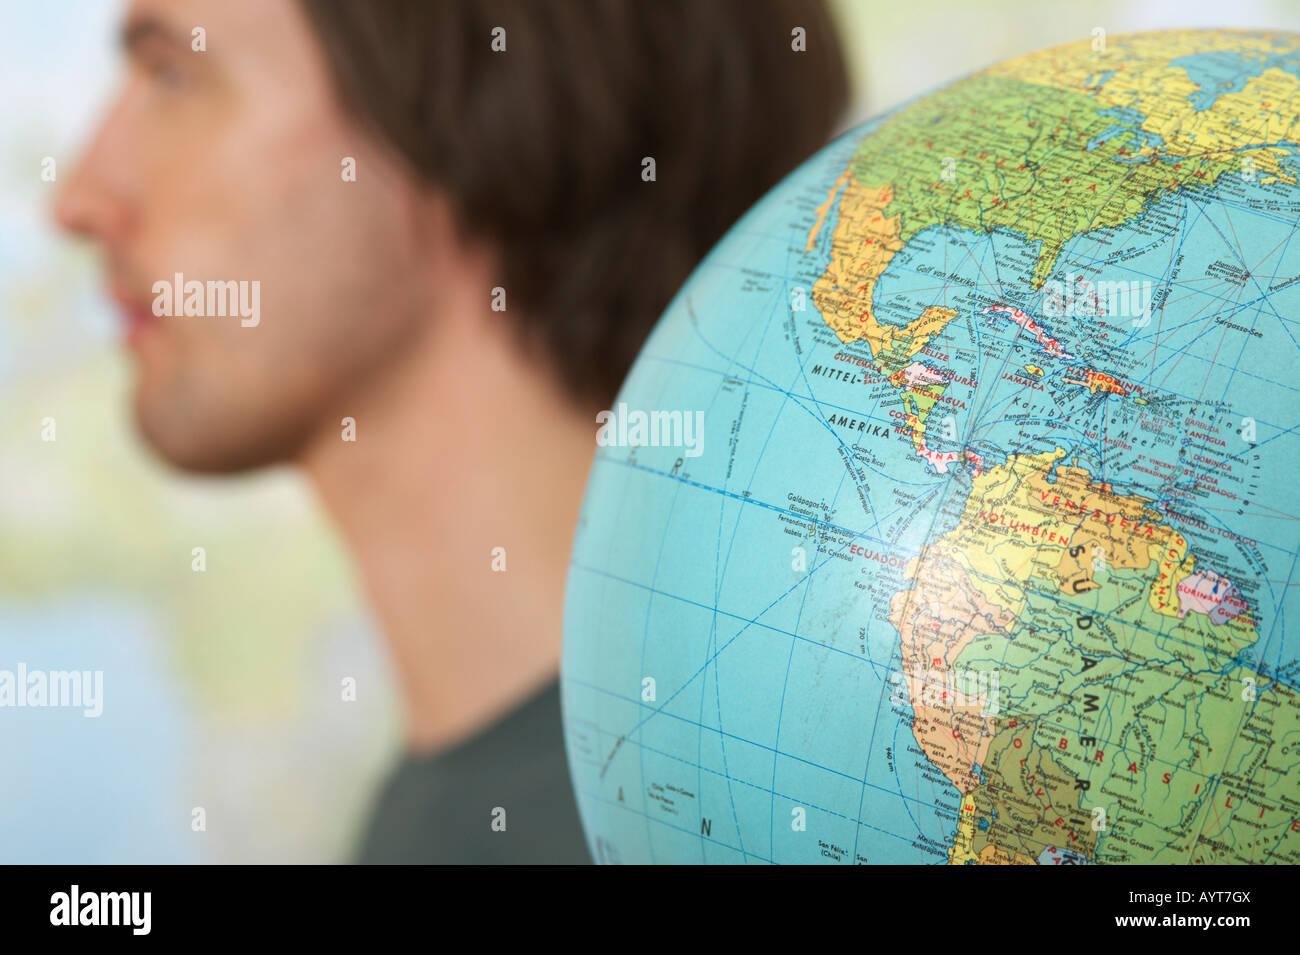 A Man beside a globe - Stock Image